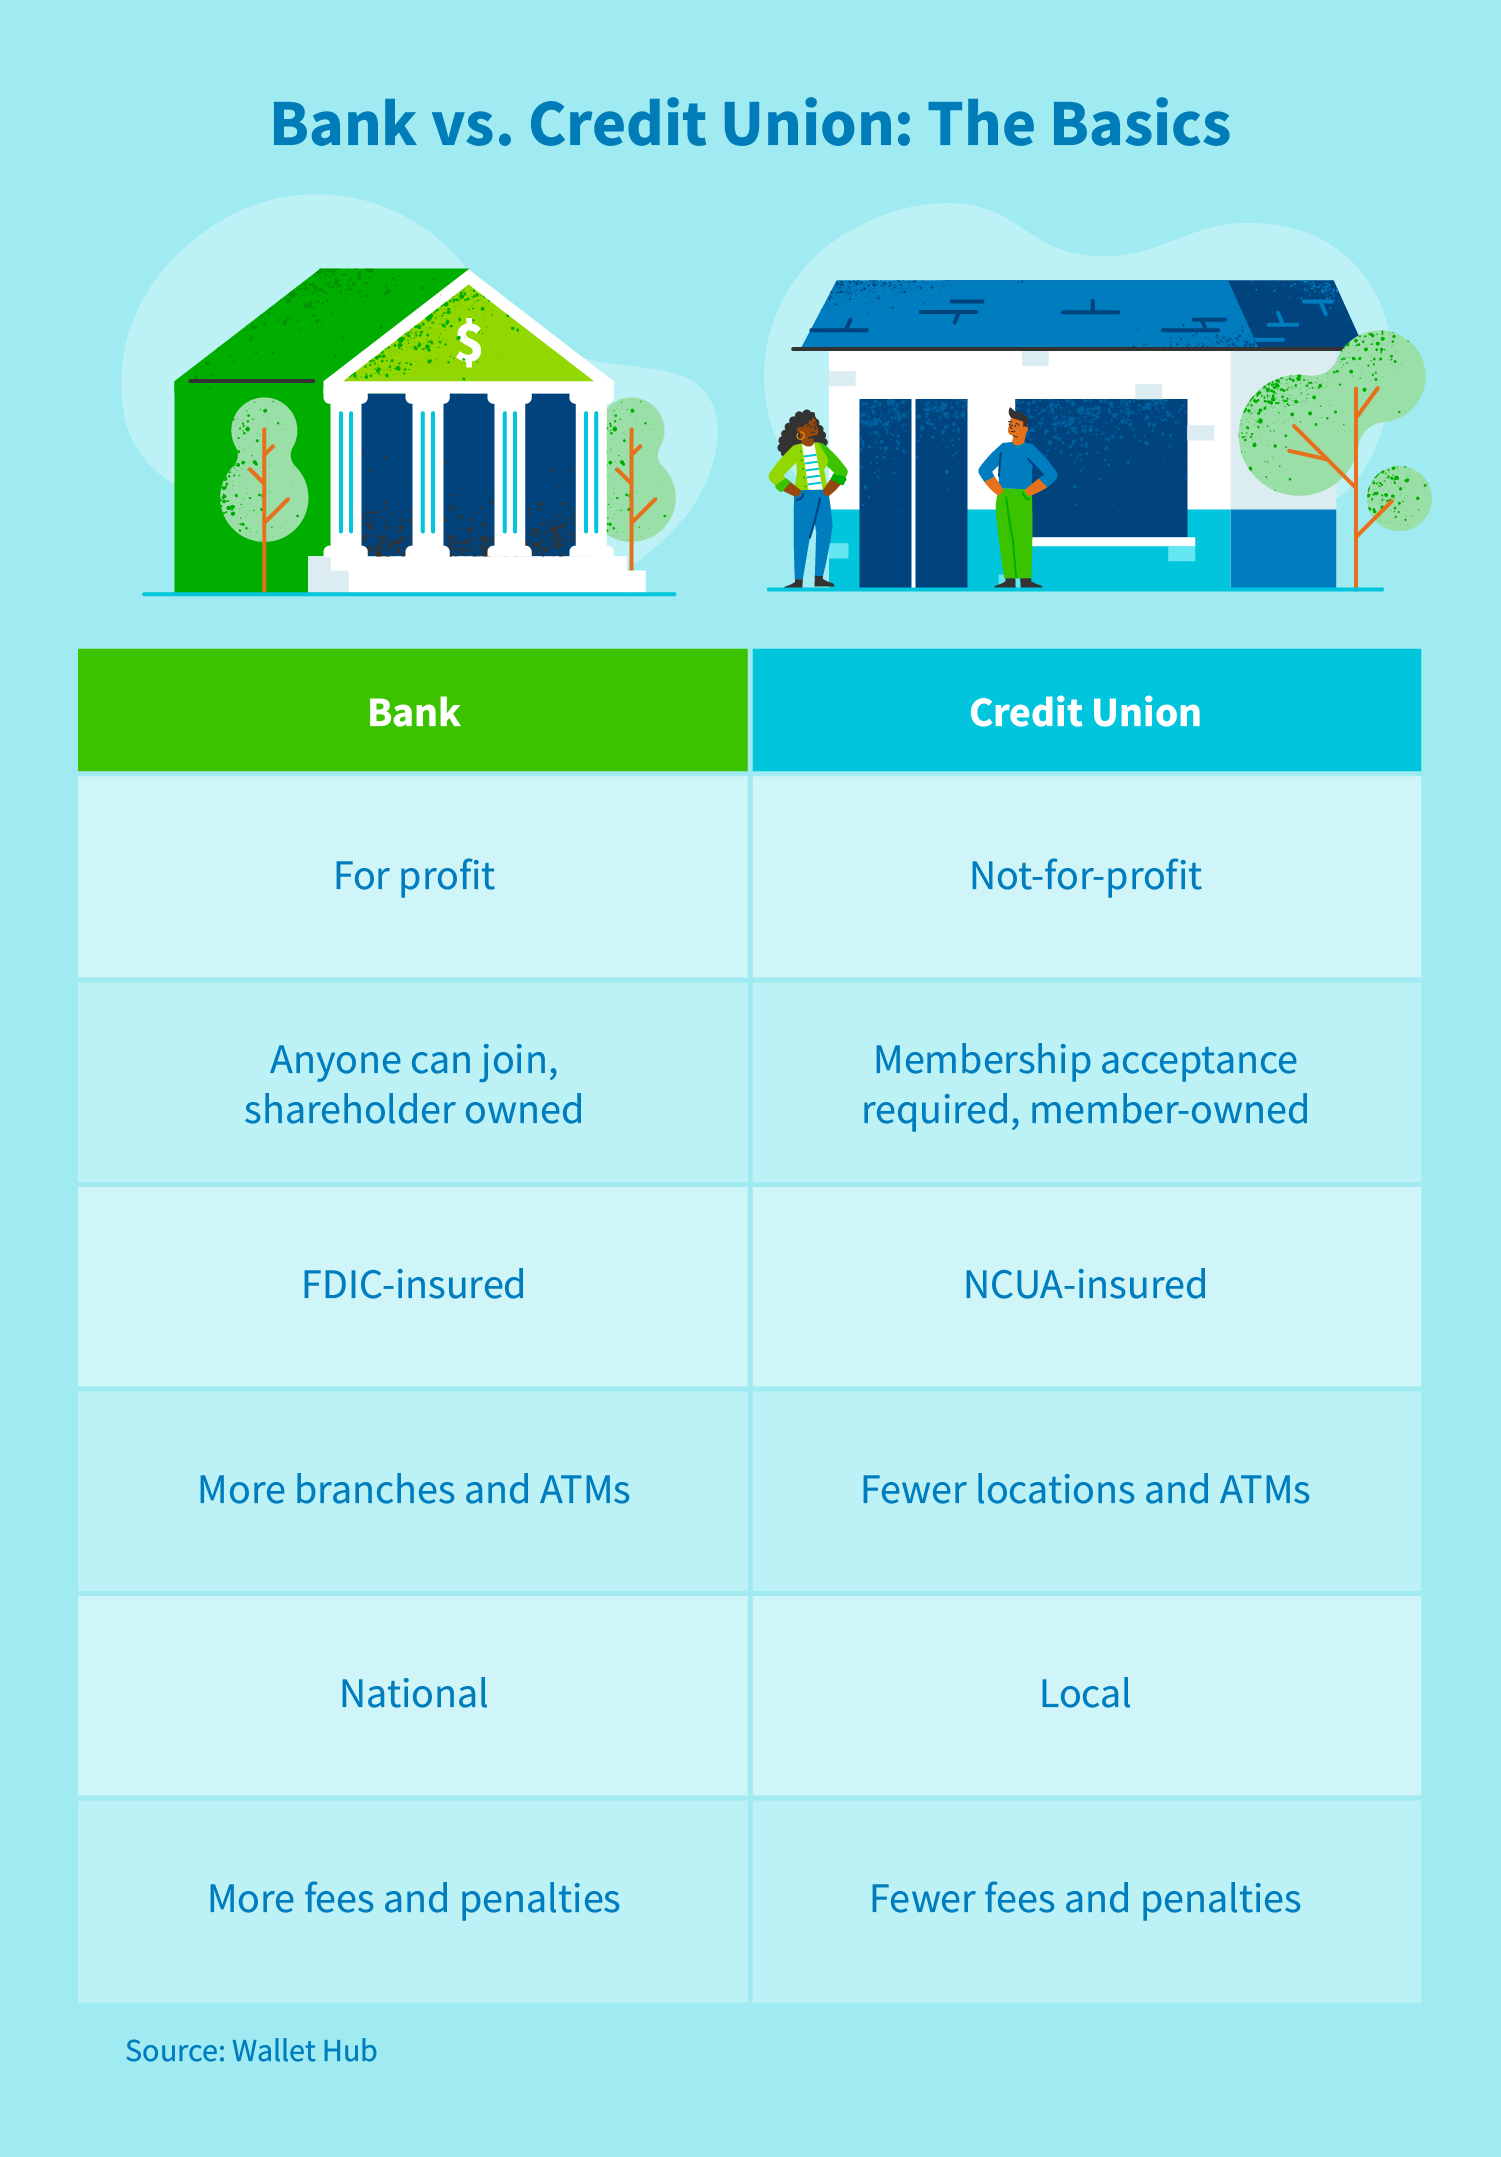 Bank vs. credit union: the basics